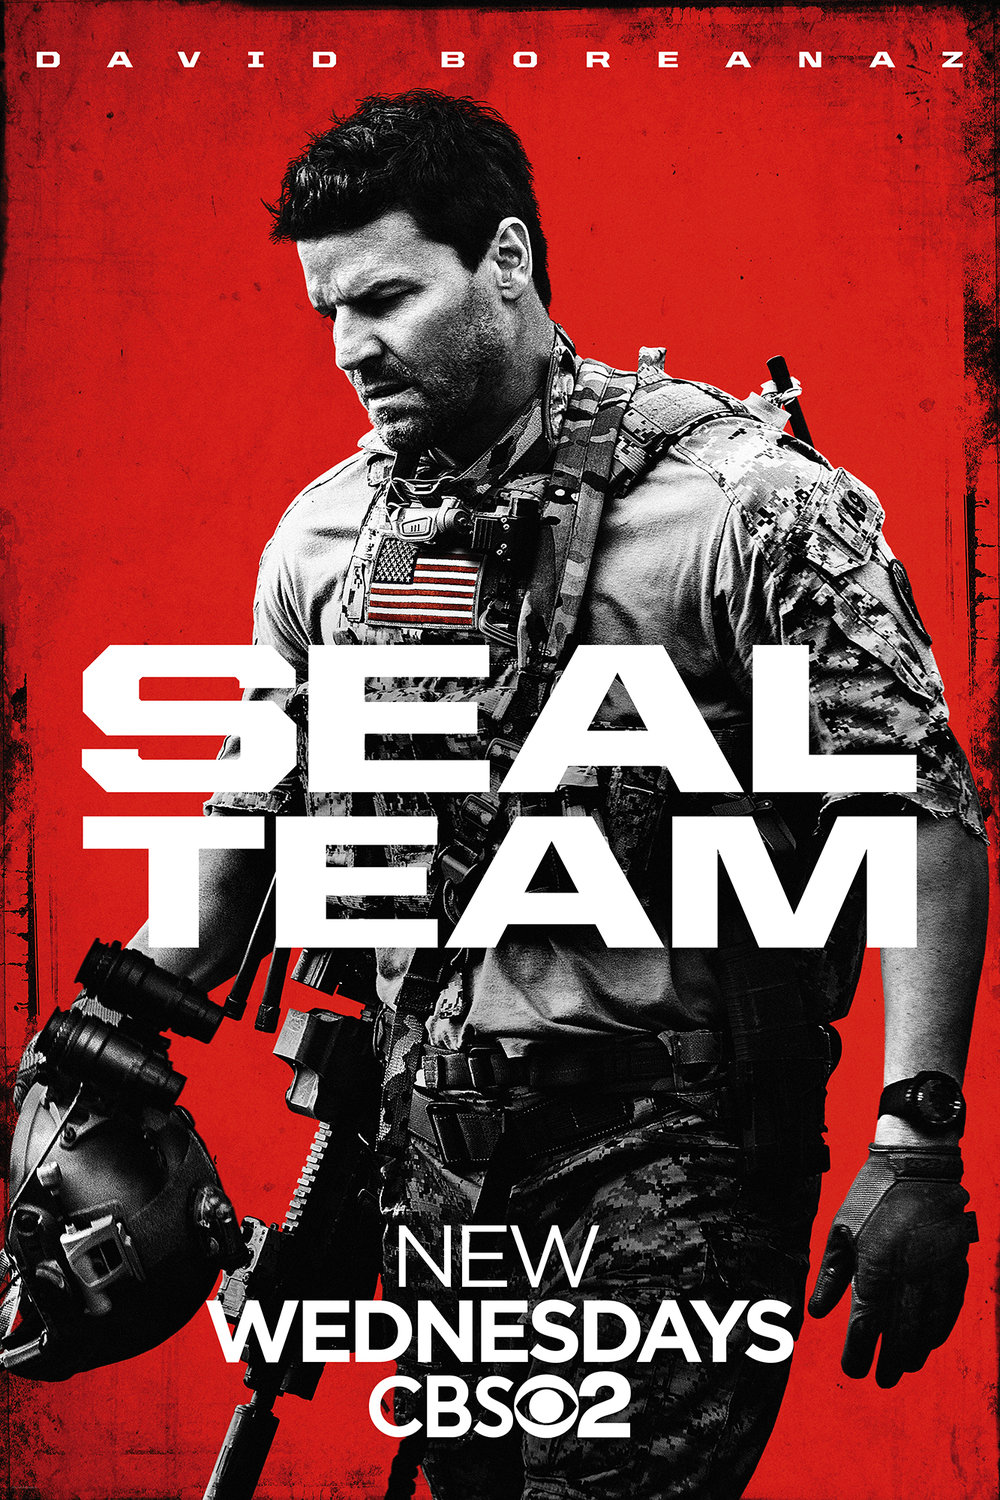 SealTeam_wildpostings_72x48_LA_RED_1F_100dpi.jpg